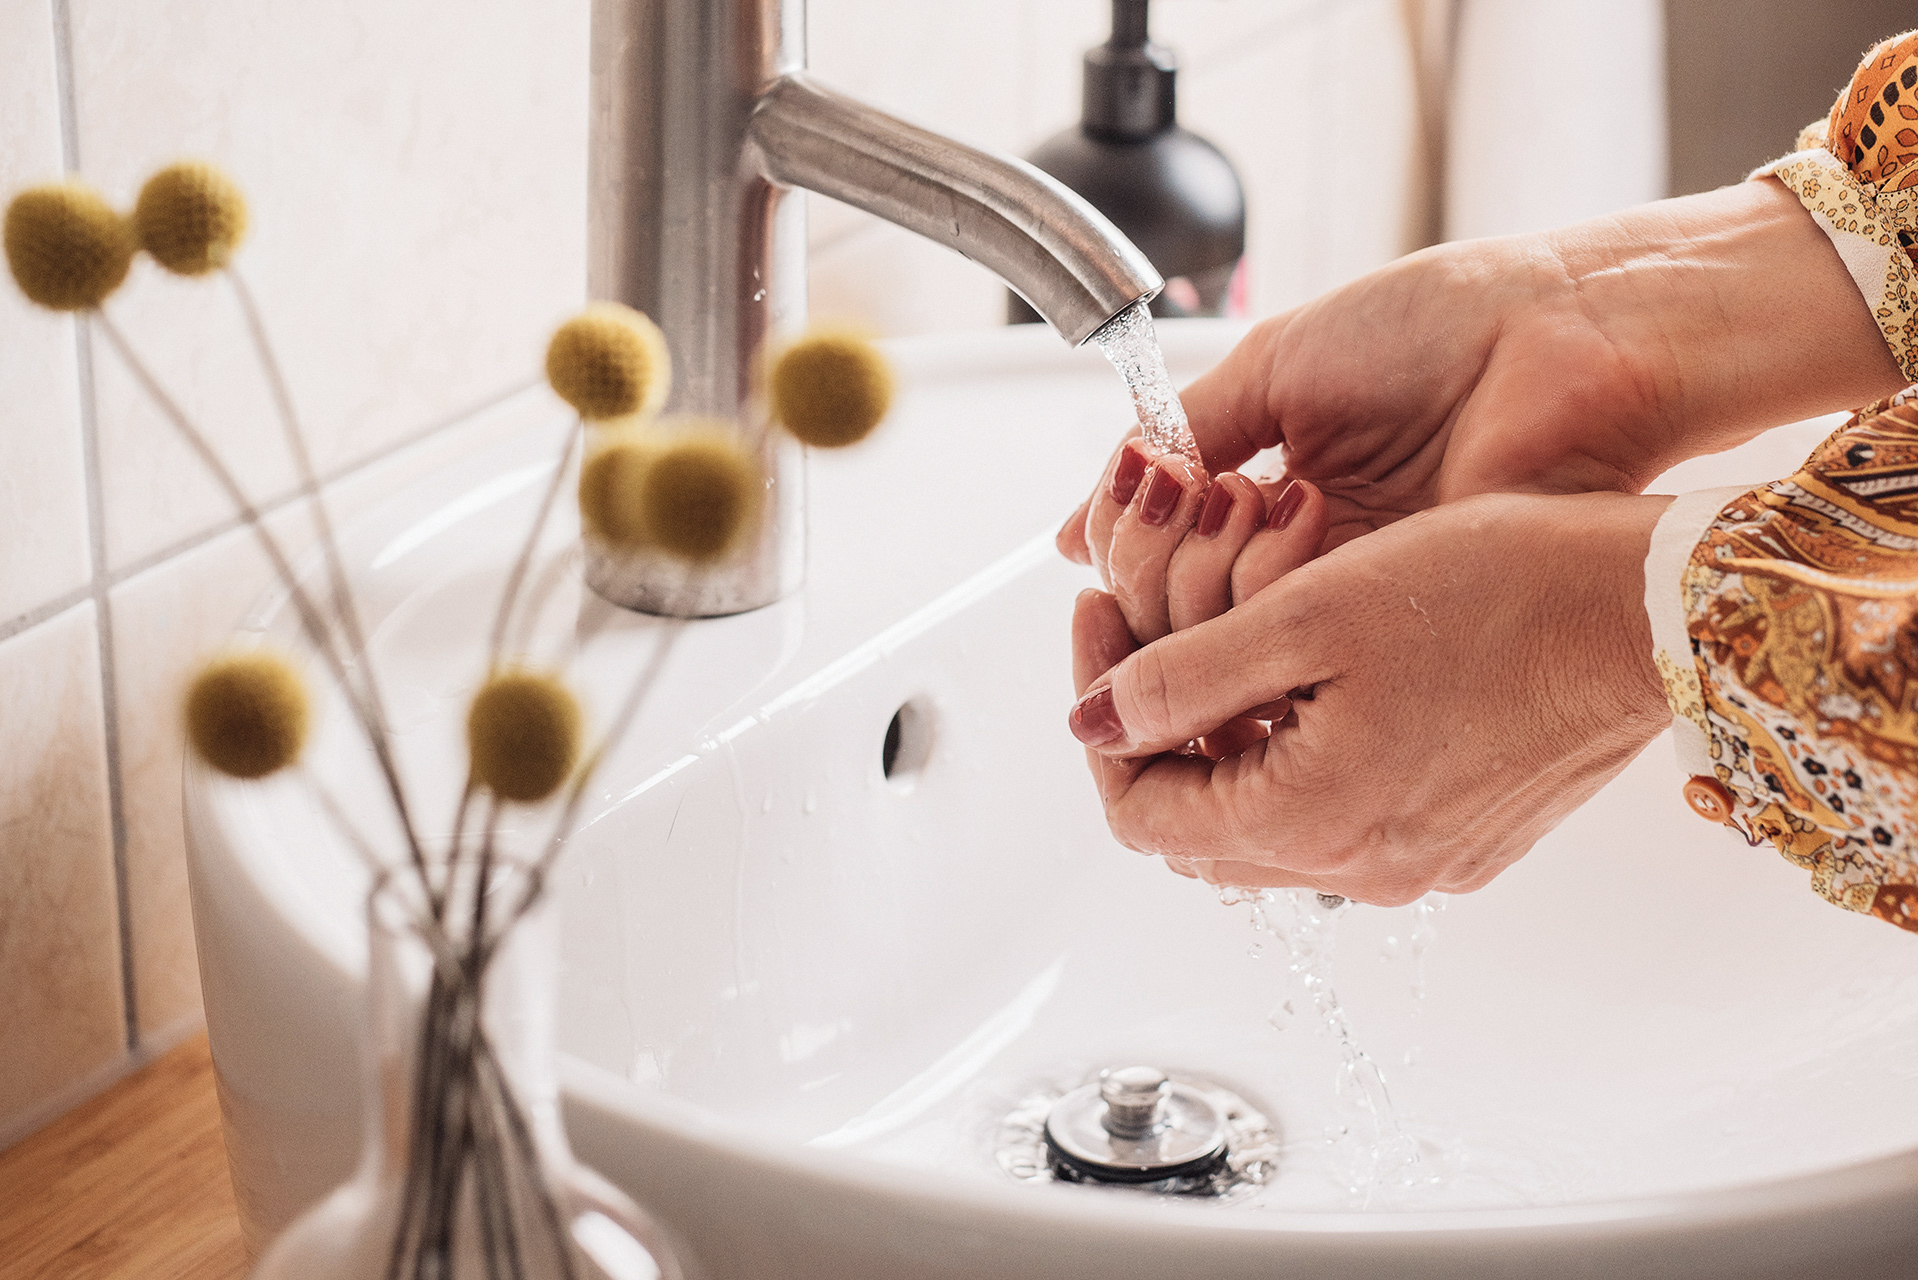 How to Wash Your Hands Properly, According to a Doctor